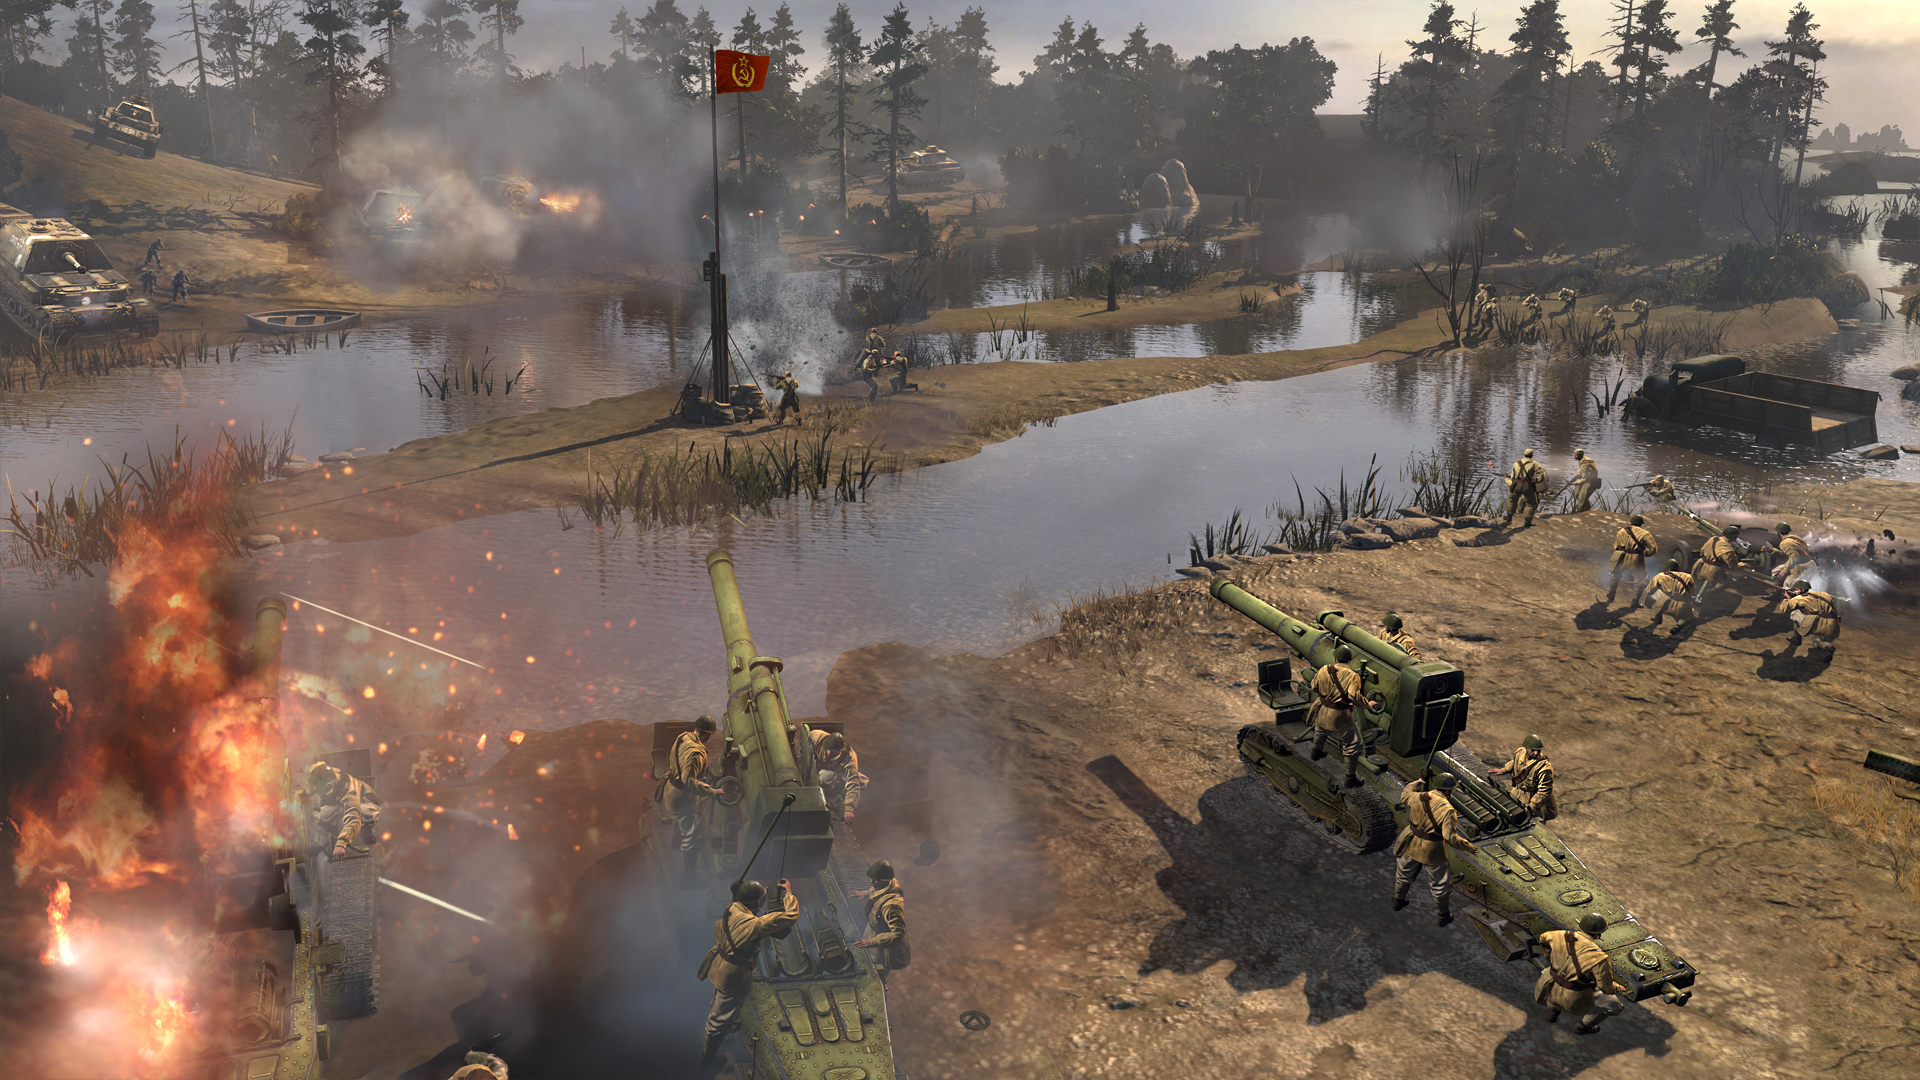 Company of heroes 2 launches turning point free update november 12 image 1 gumiabroncs Image collections